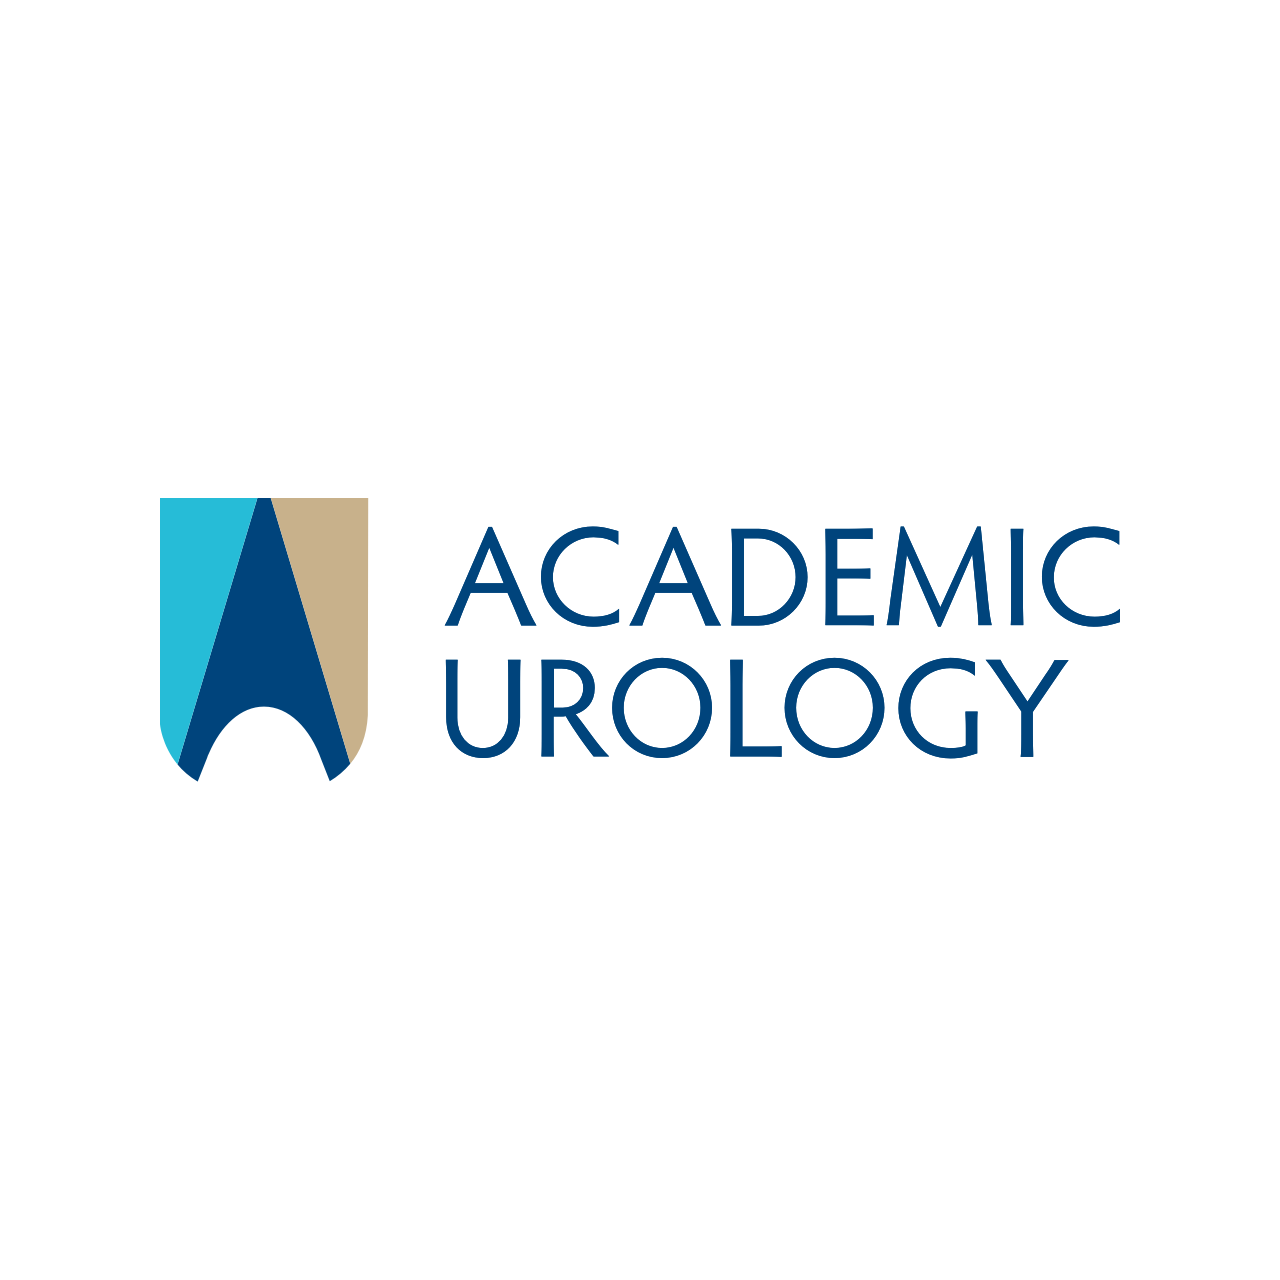 Academic Urology